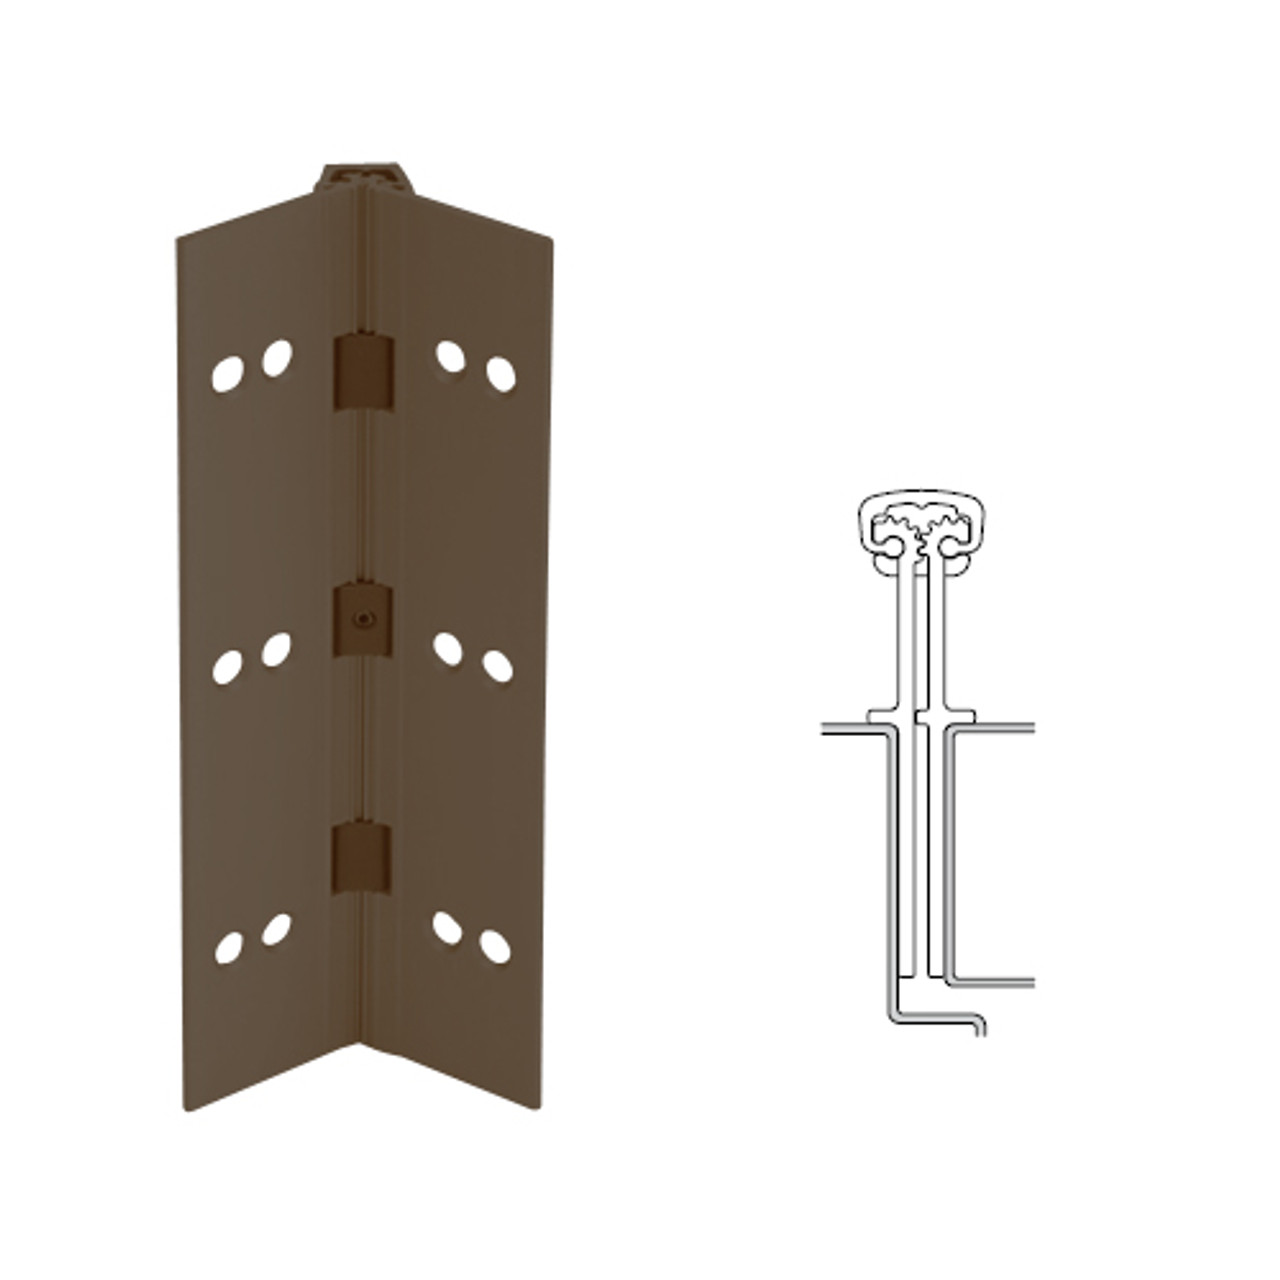 040XY-313AN-95-SECWDHM IVES Full Mortise Continuous Geared Hinges with Security Screws - Hex Pin Drive in Dark Bronze Anodized